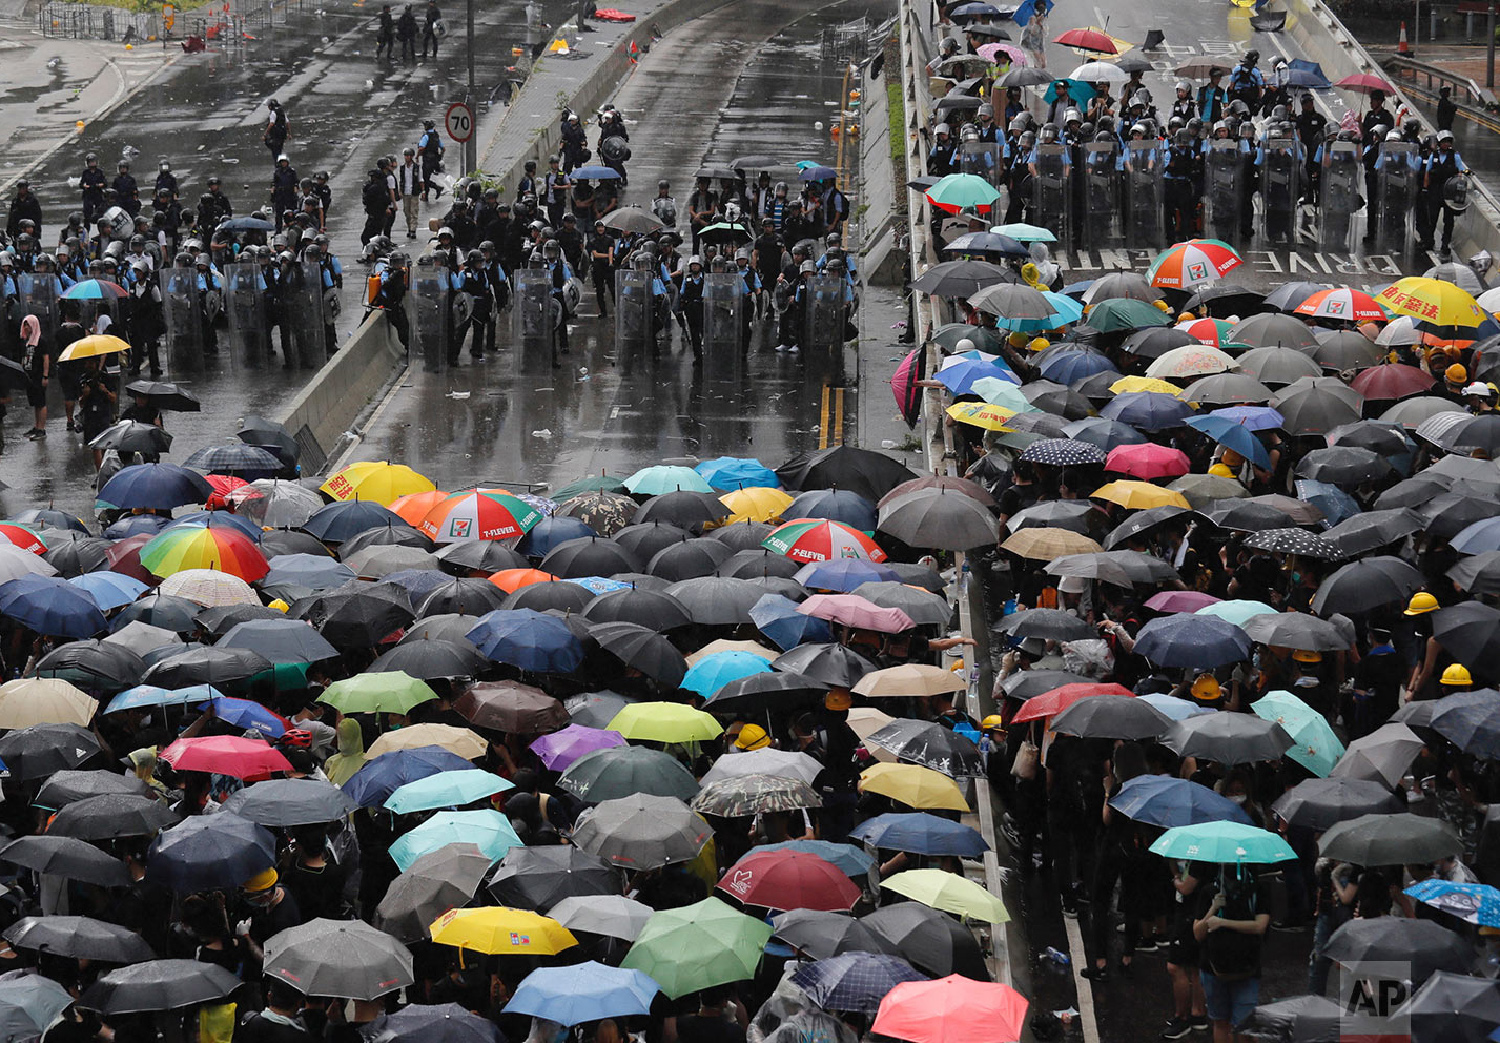 Protesters holding umbrellas face off police officers in anti-riot gear in Hong Kong, July 1, 2019. (AP Photo/Kin Cheung)